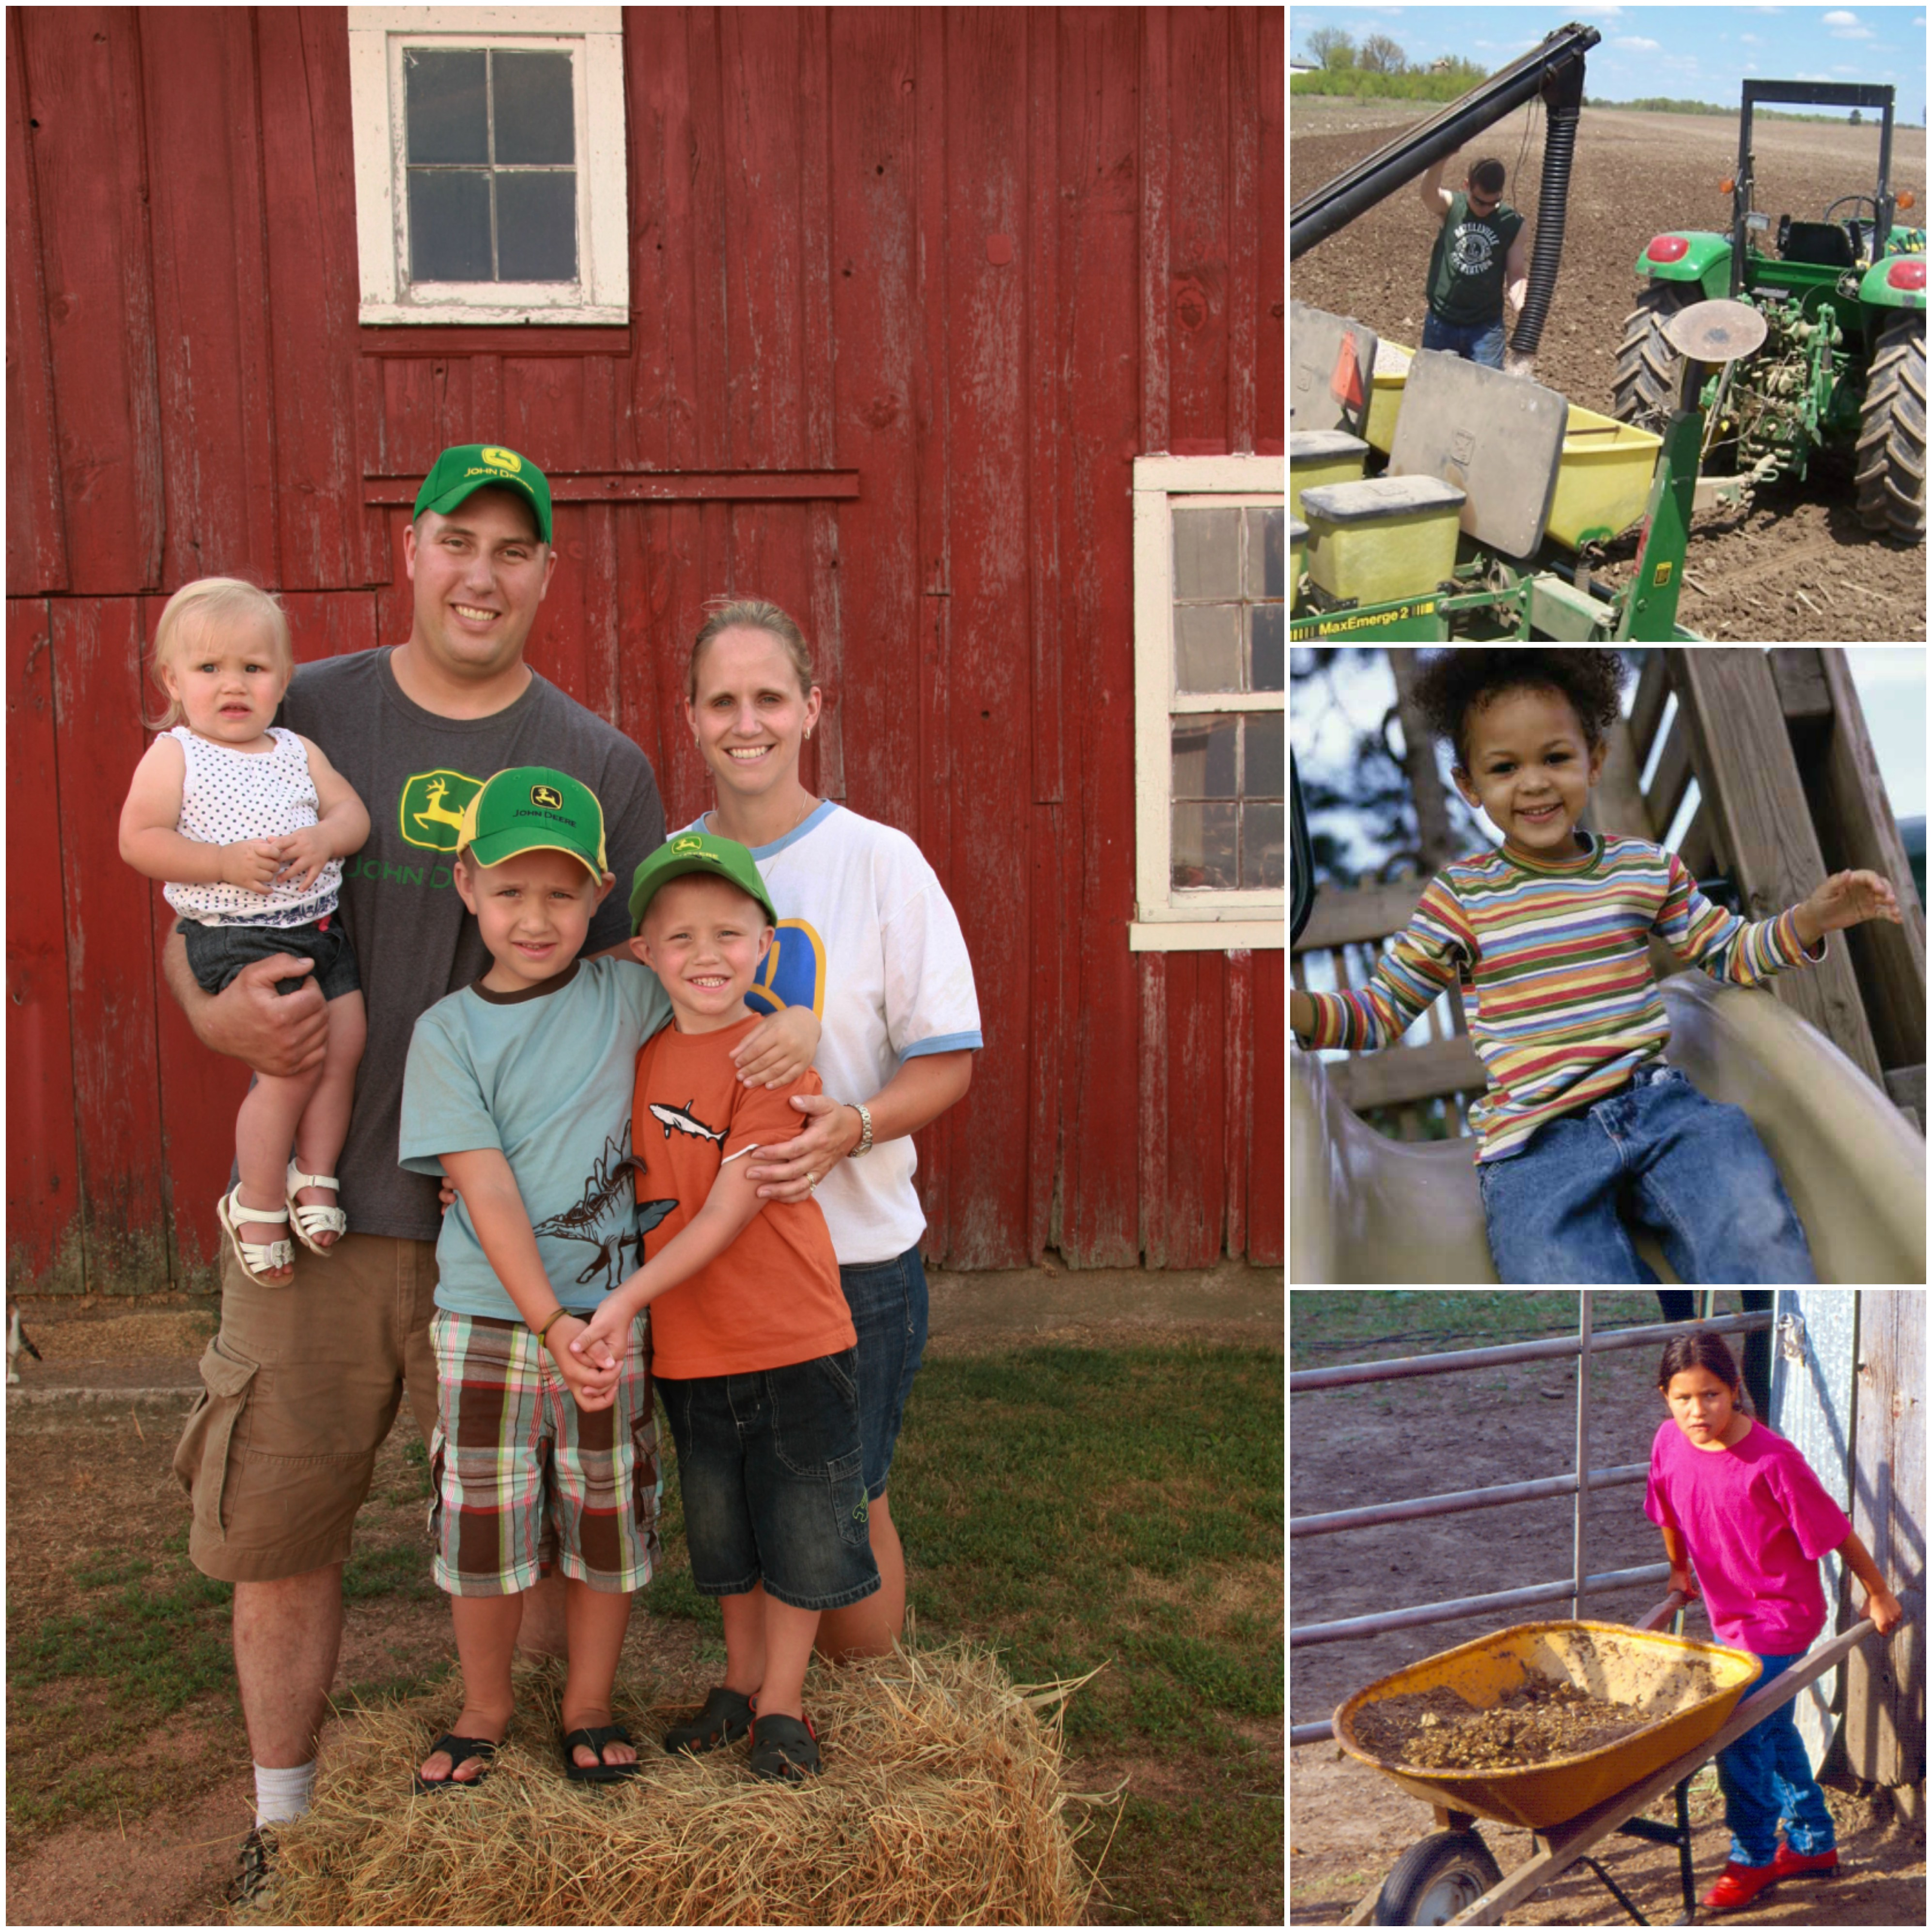 Child/Youth Agricultural Safety Checklist